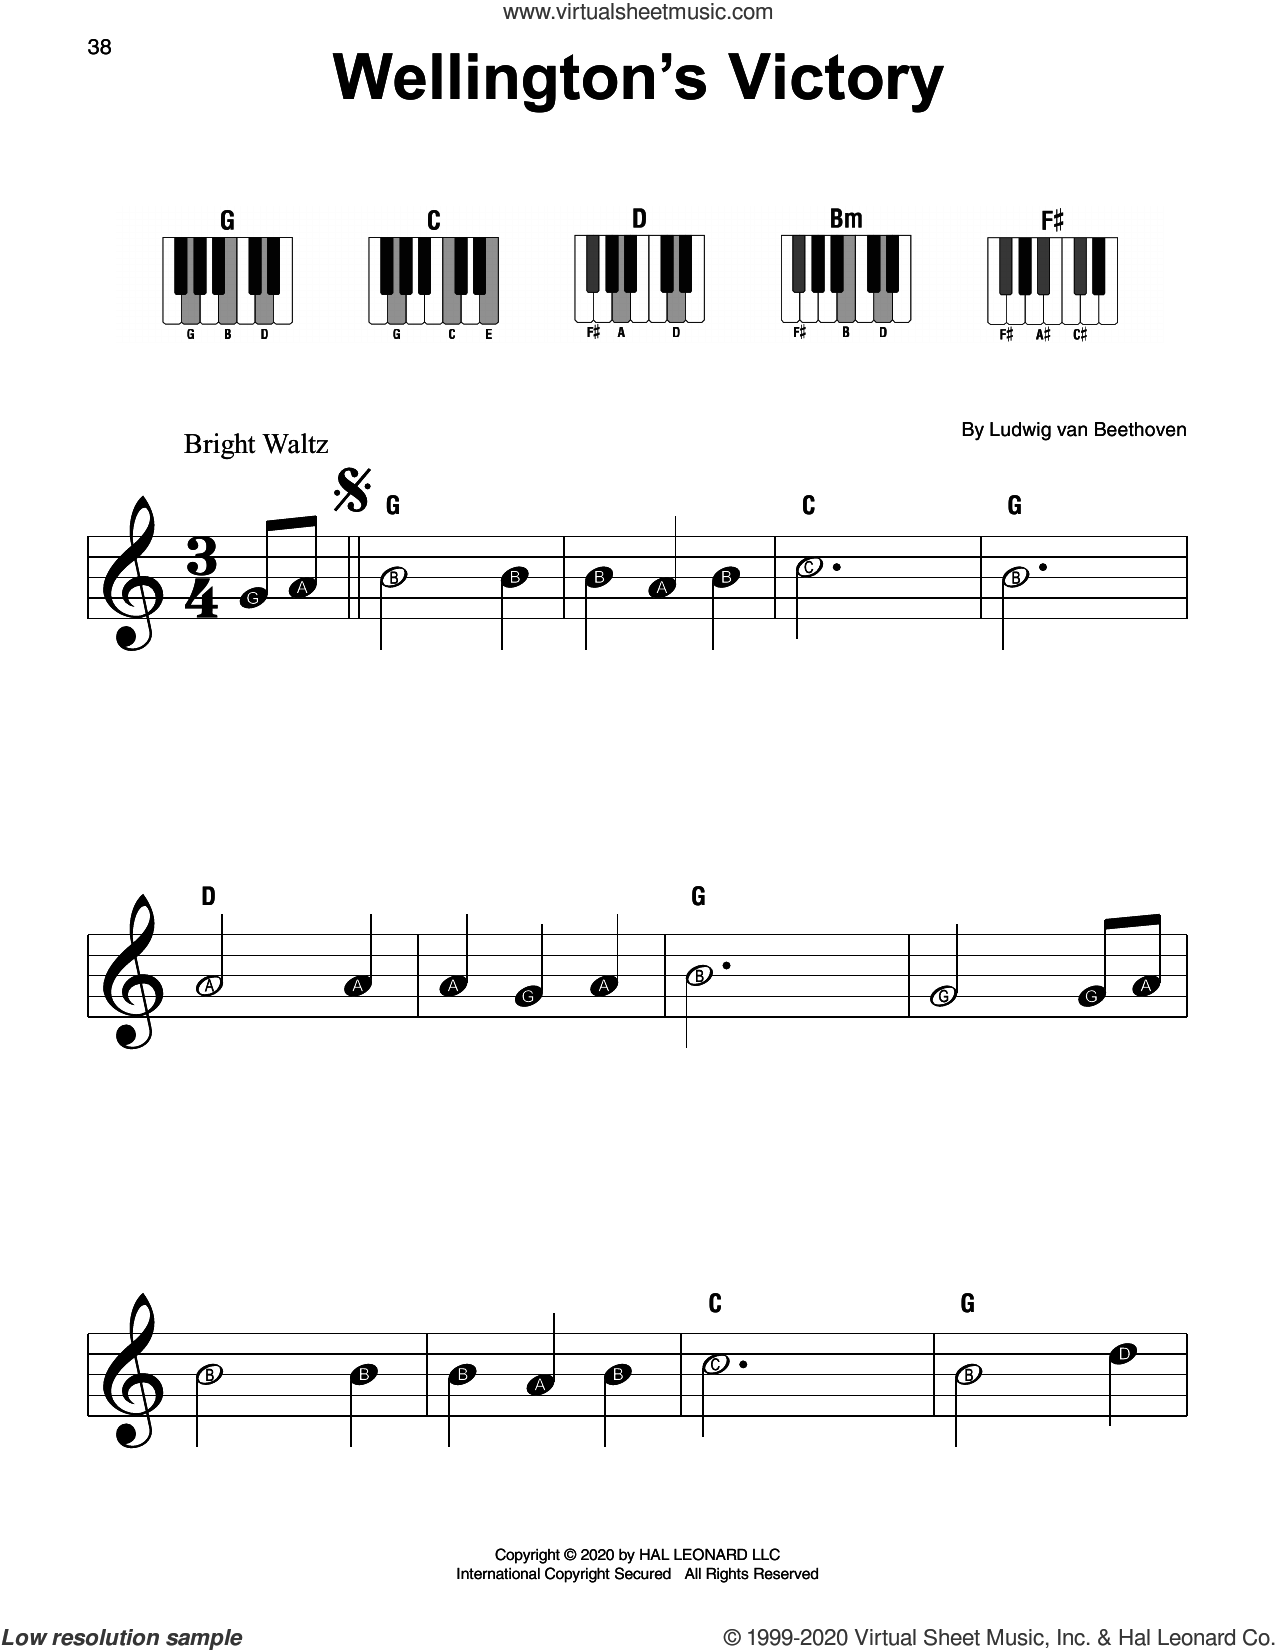 Wellington's Victory sheet music for piano solo by Ludwig van Beethoven, classical score, beginner skill level